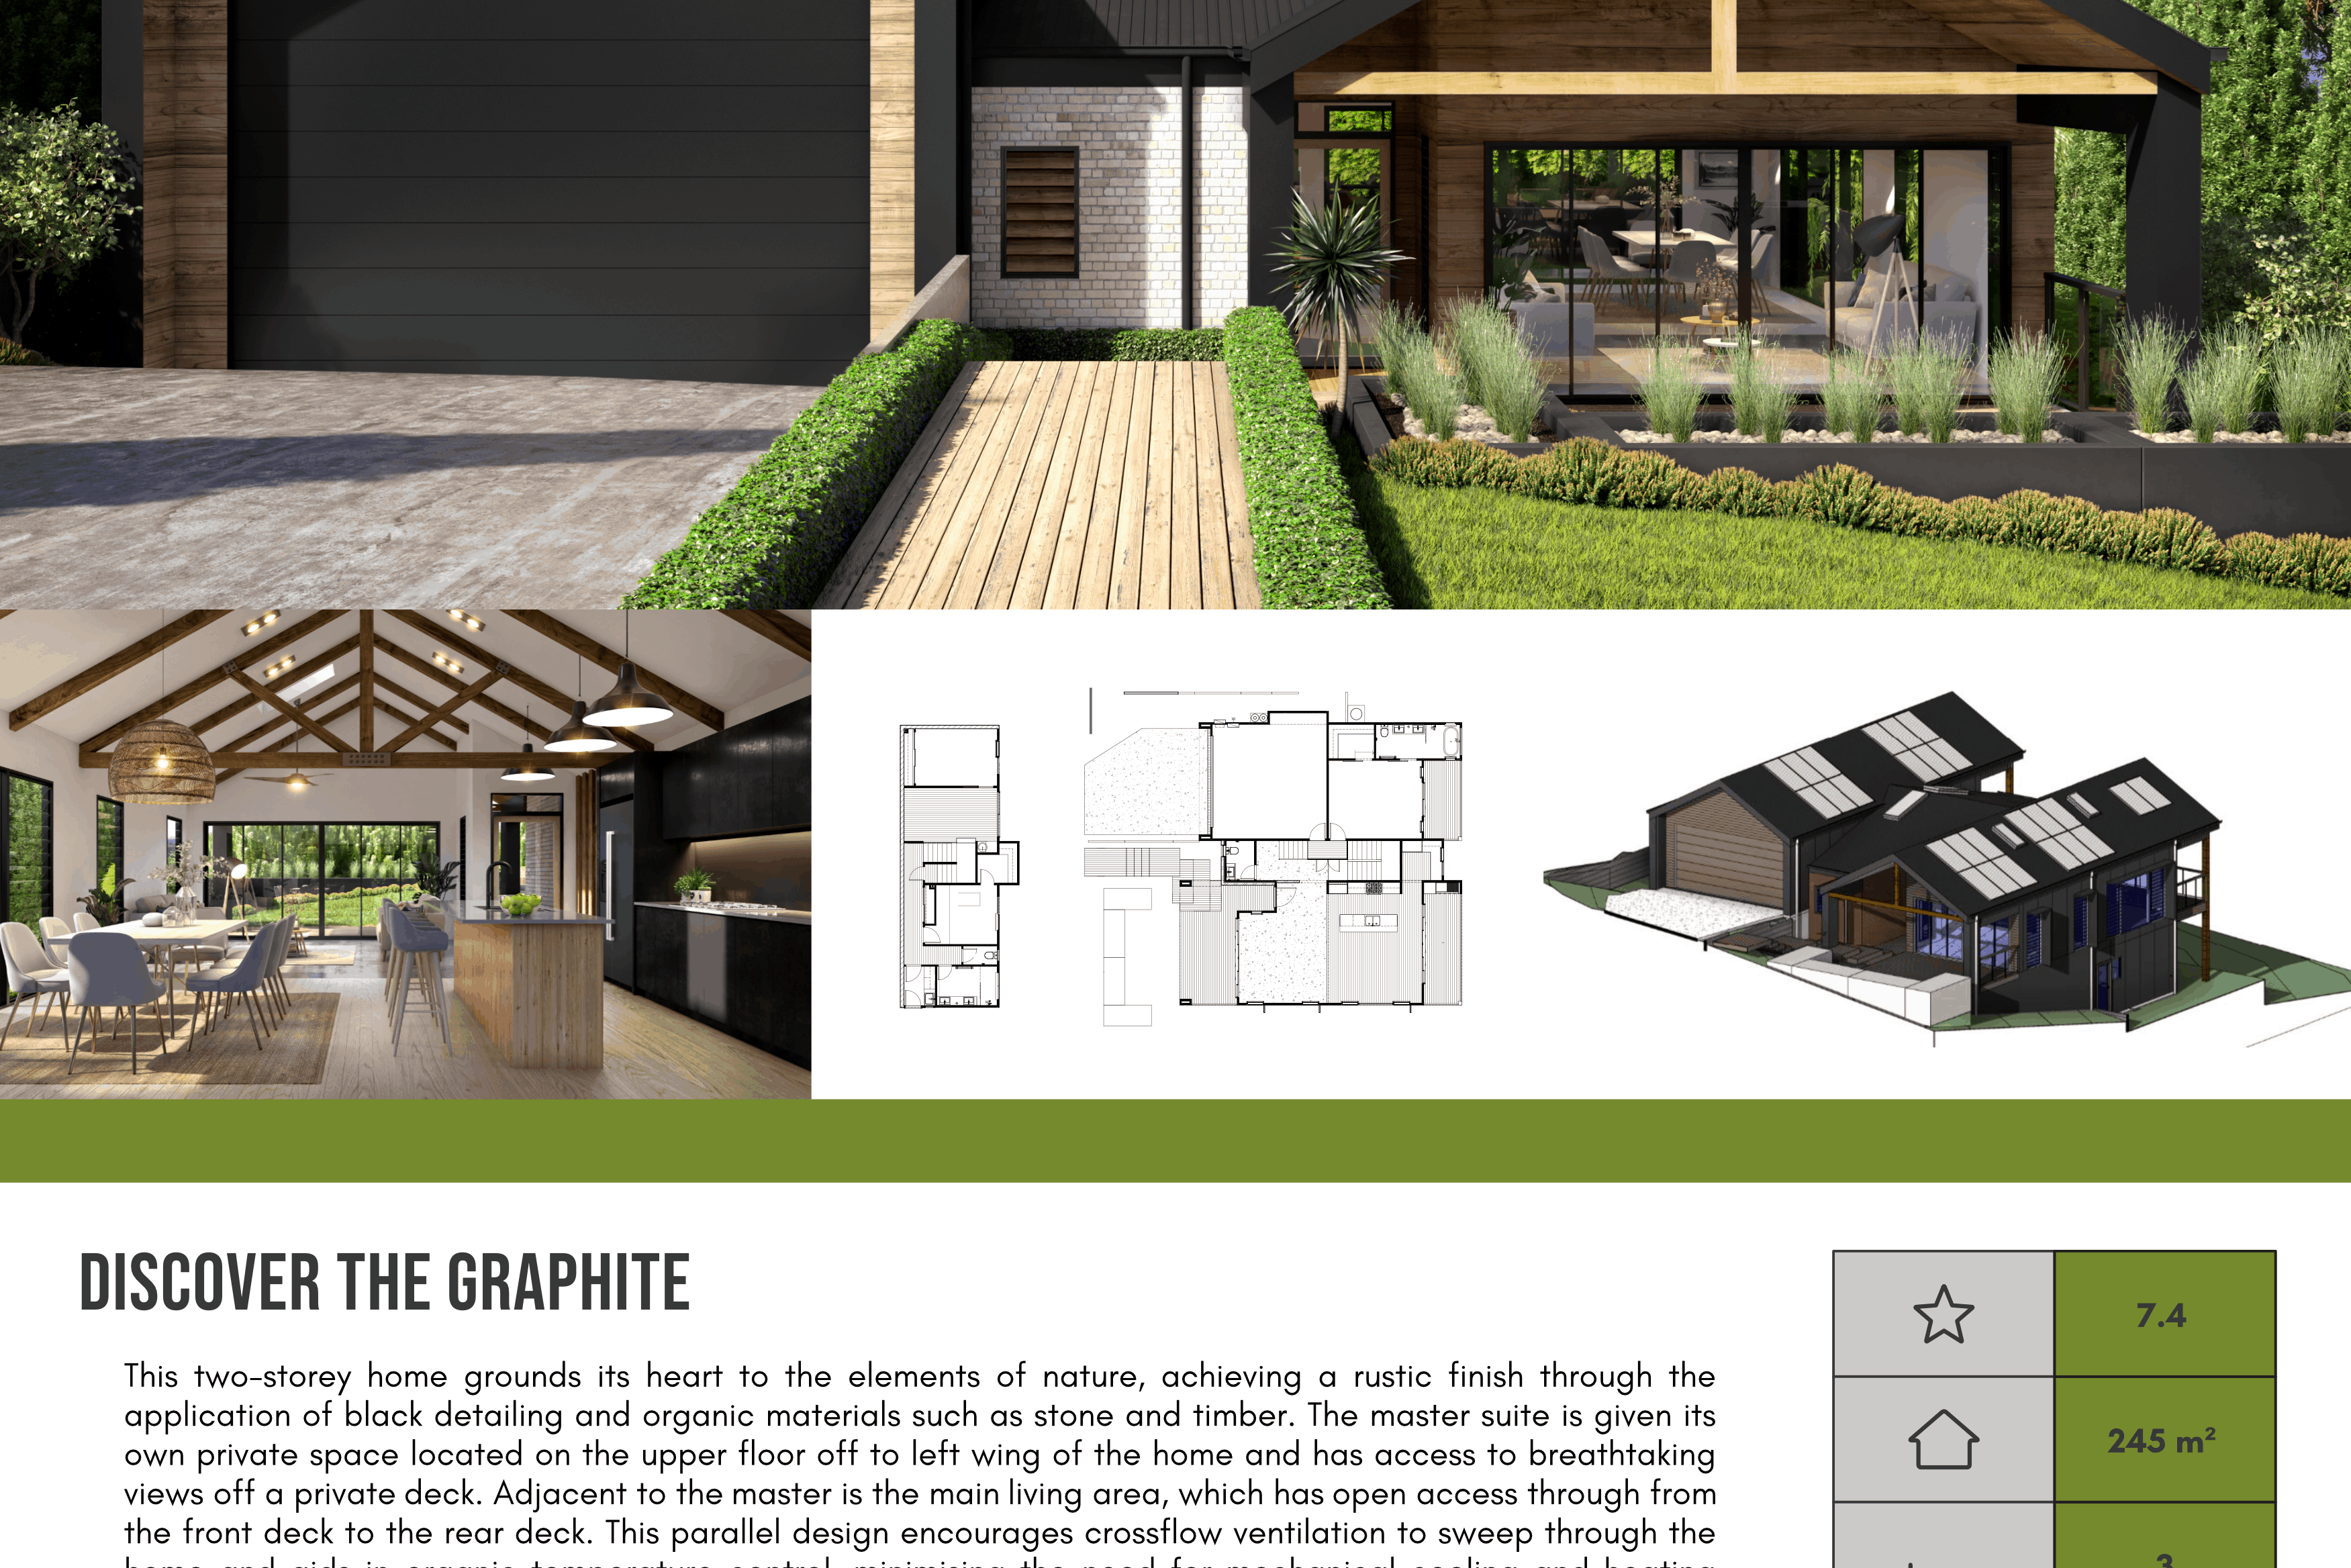 The Graphite Brochure Thank You